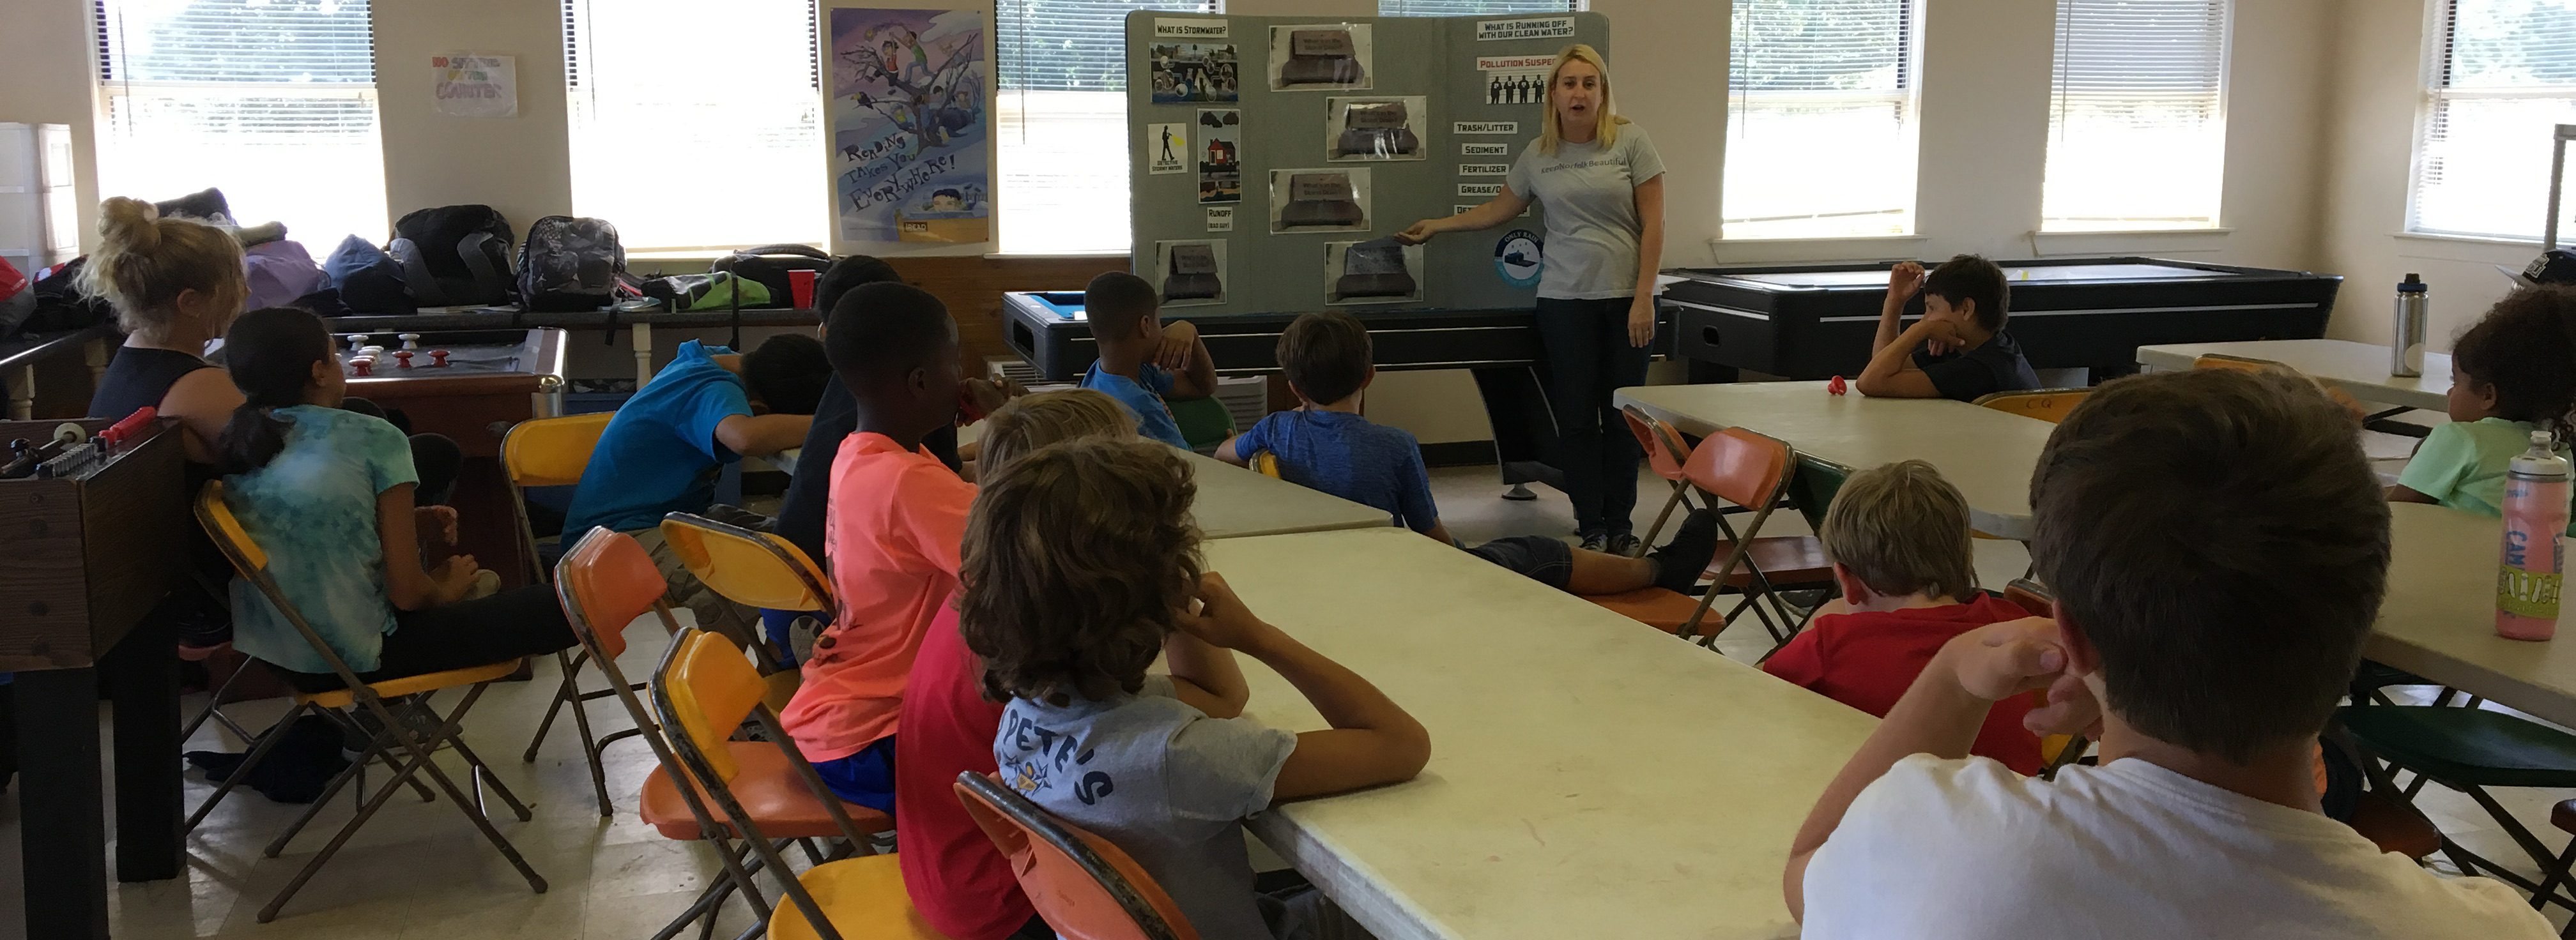 children in a classroom watching a stormwater presentation